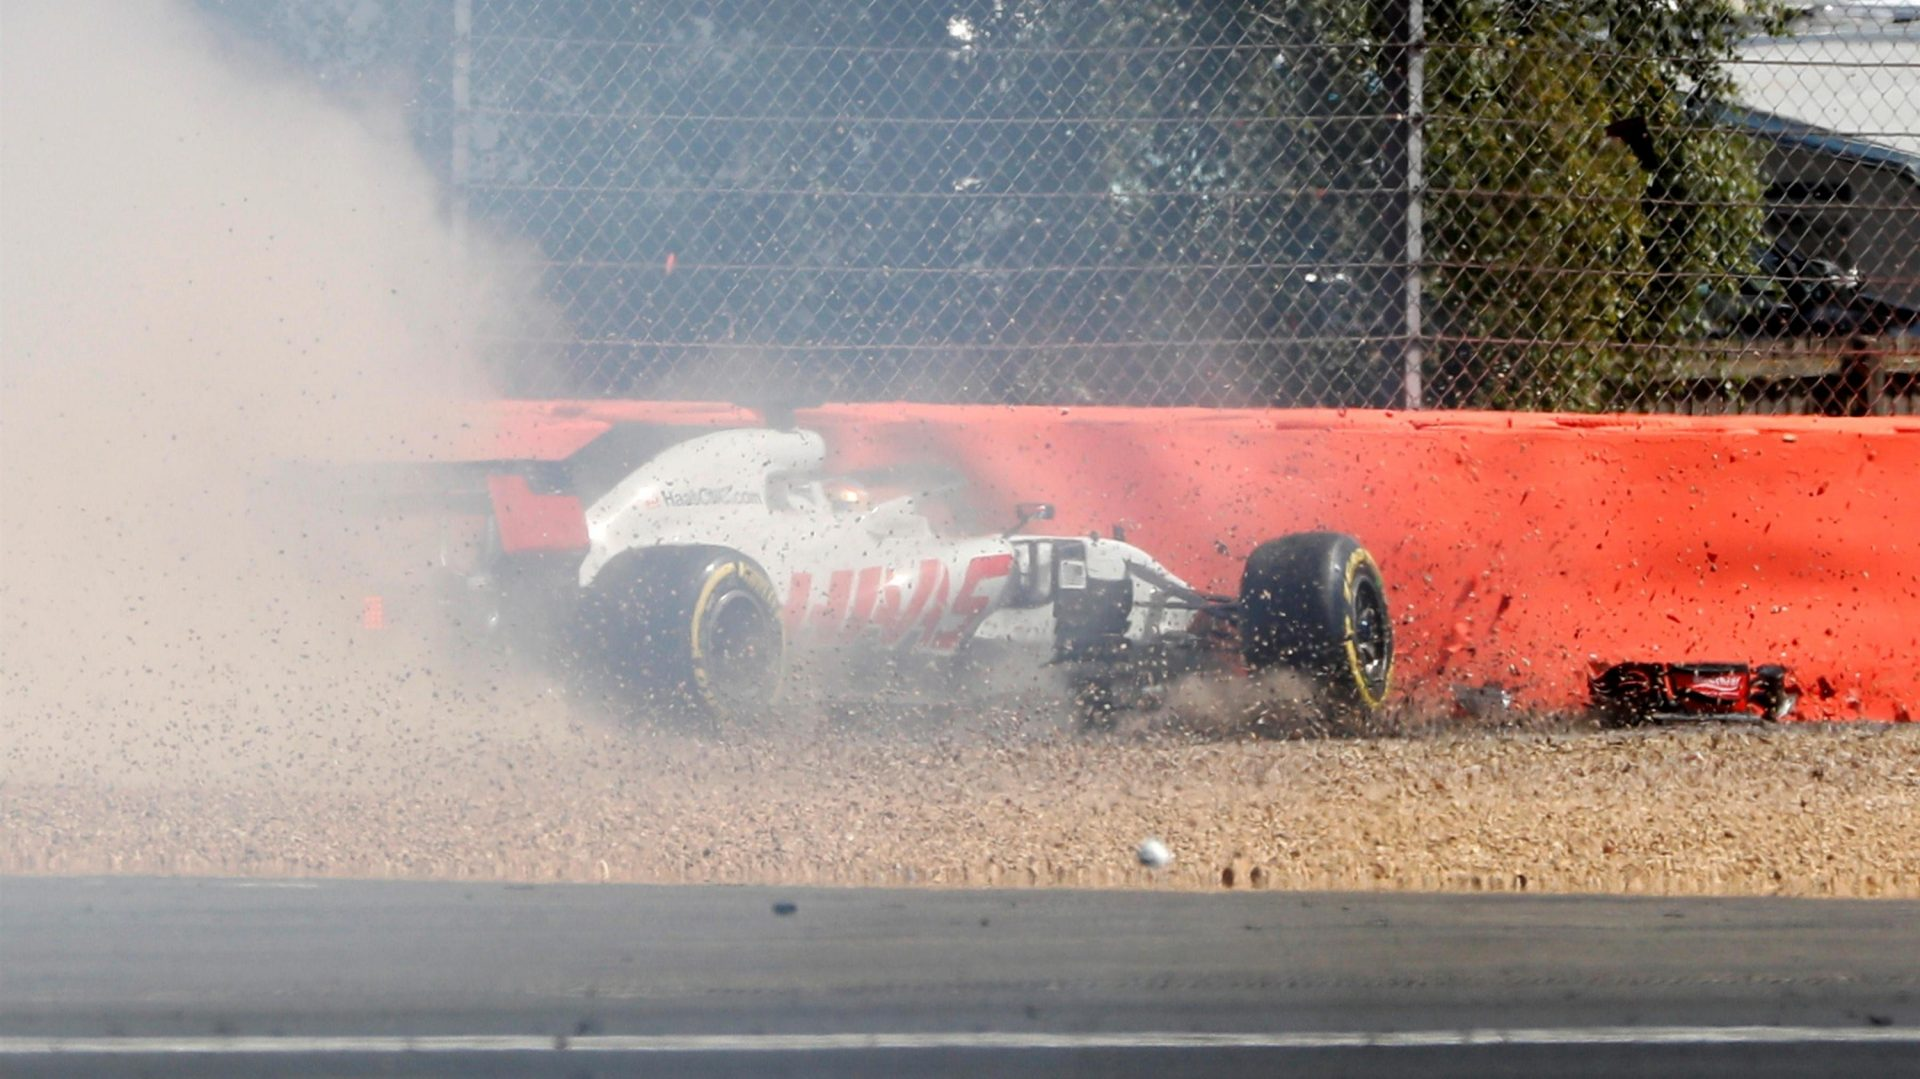 https://www.formula1.com/content/fom-website/en/latest/features/2018/7/gallery--the-best-images-from-great-britain/_jcr_content/featureContent/manual_gallery/image17.img.1920.medium.jpg/1530873546130.jpg